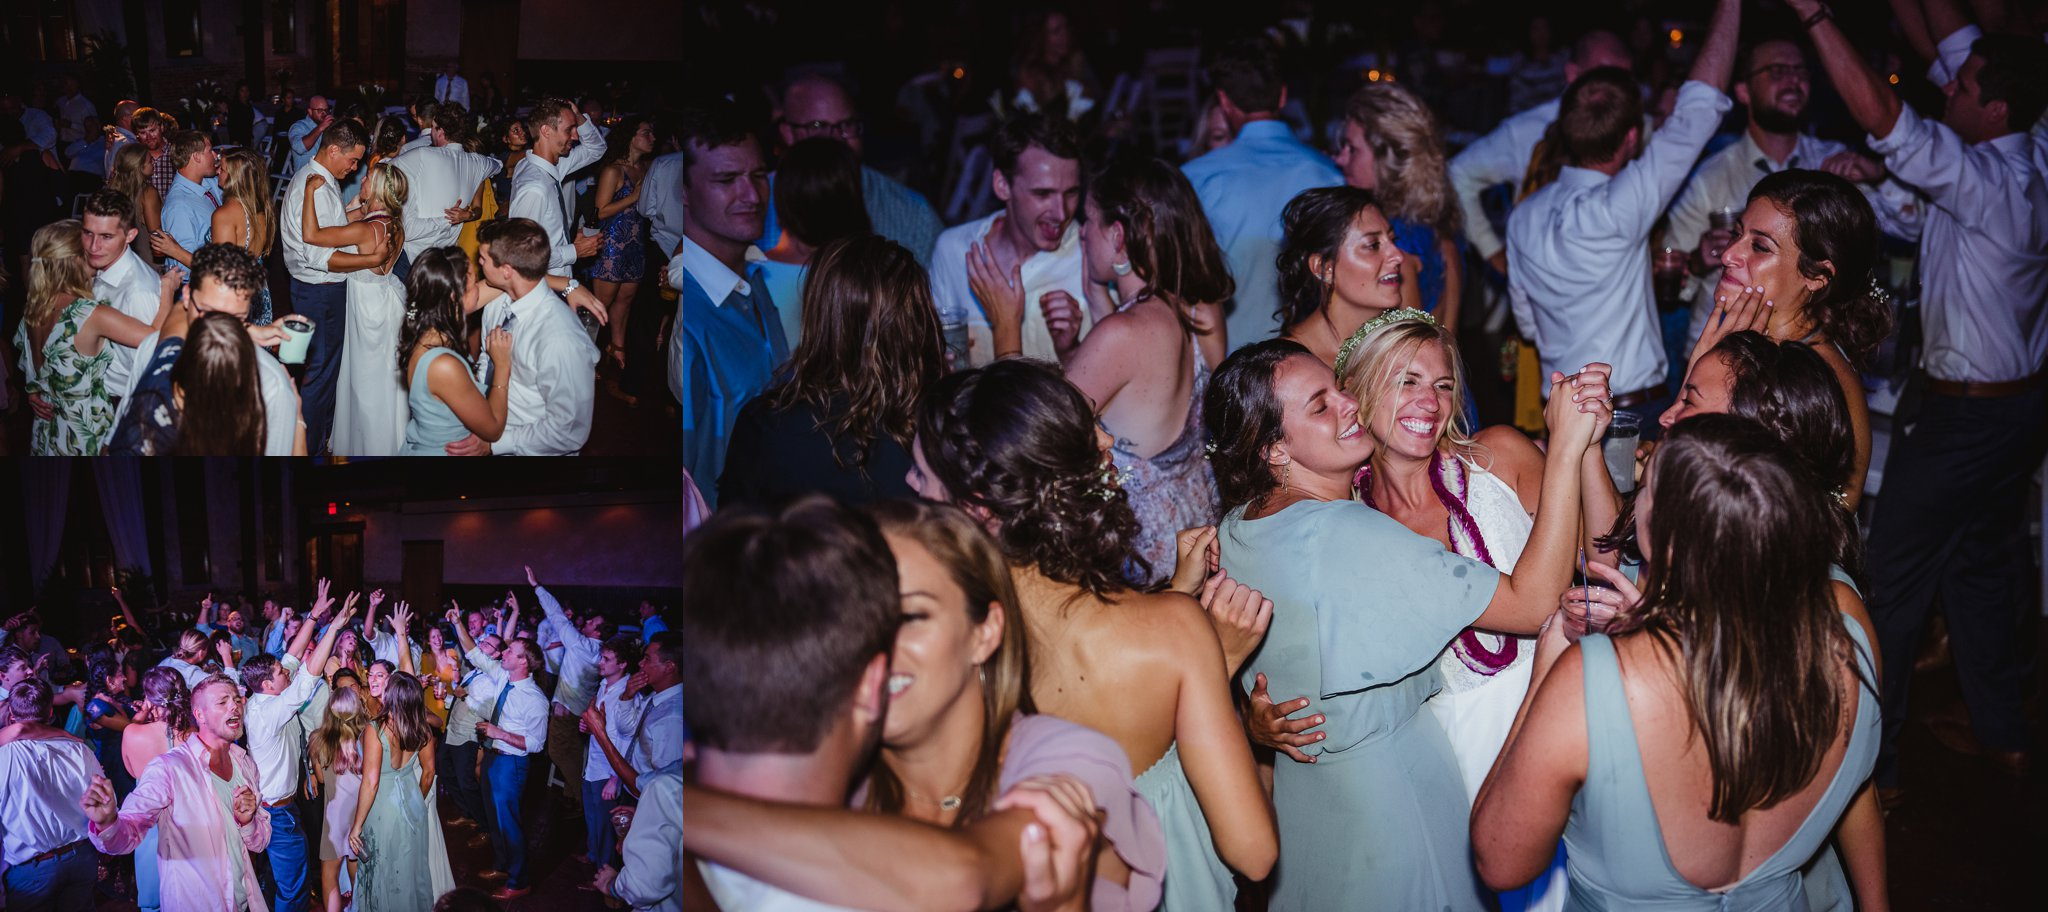 The bride and groom and all their guests dance at their wedding reception in Wilmington, NC, photos by Rose Trail Images.